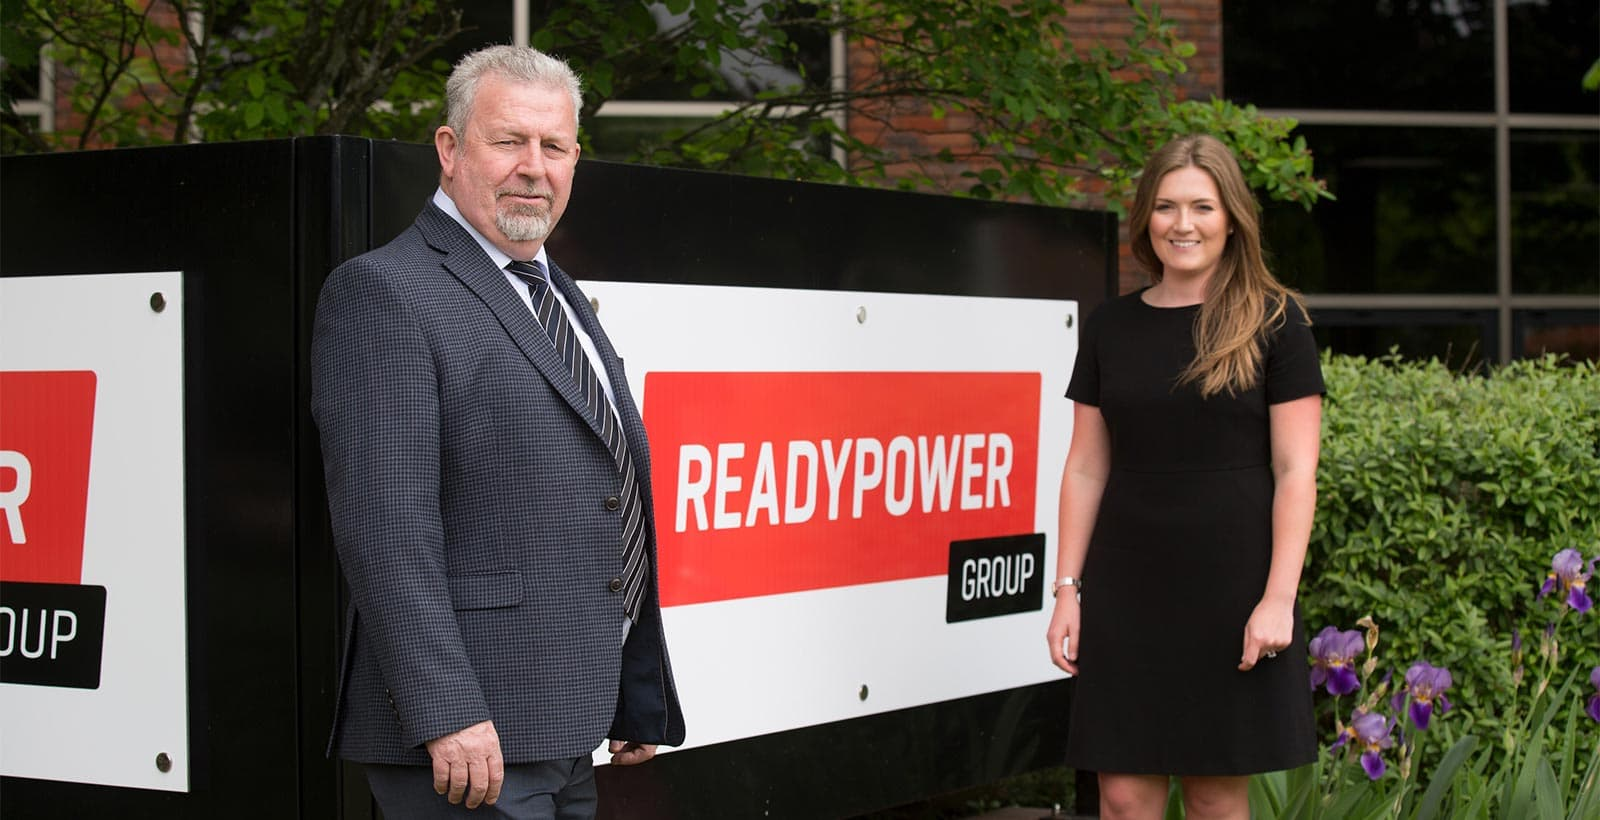 Readypower relocates headquarters to Winnersh Triangle